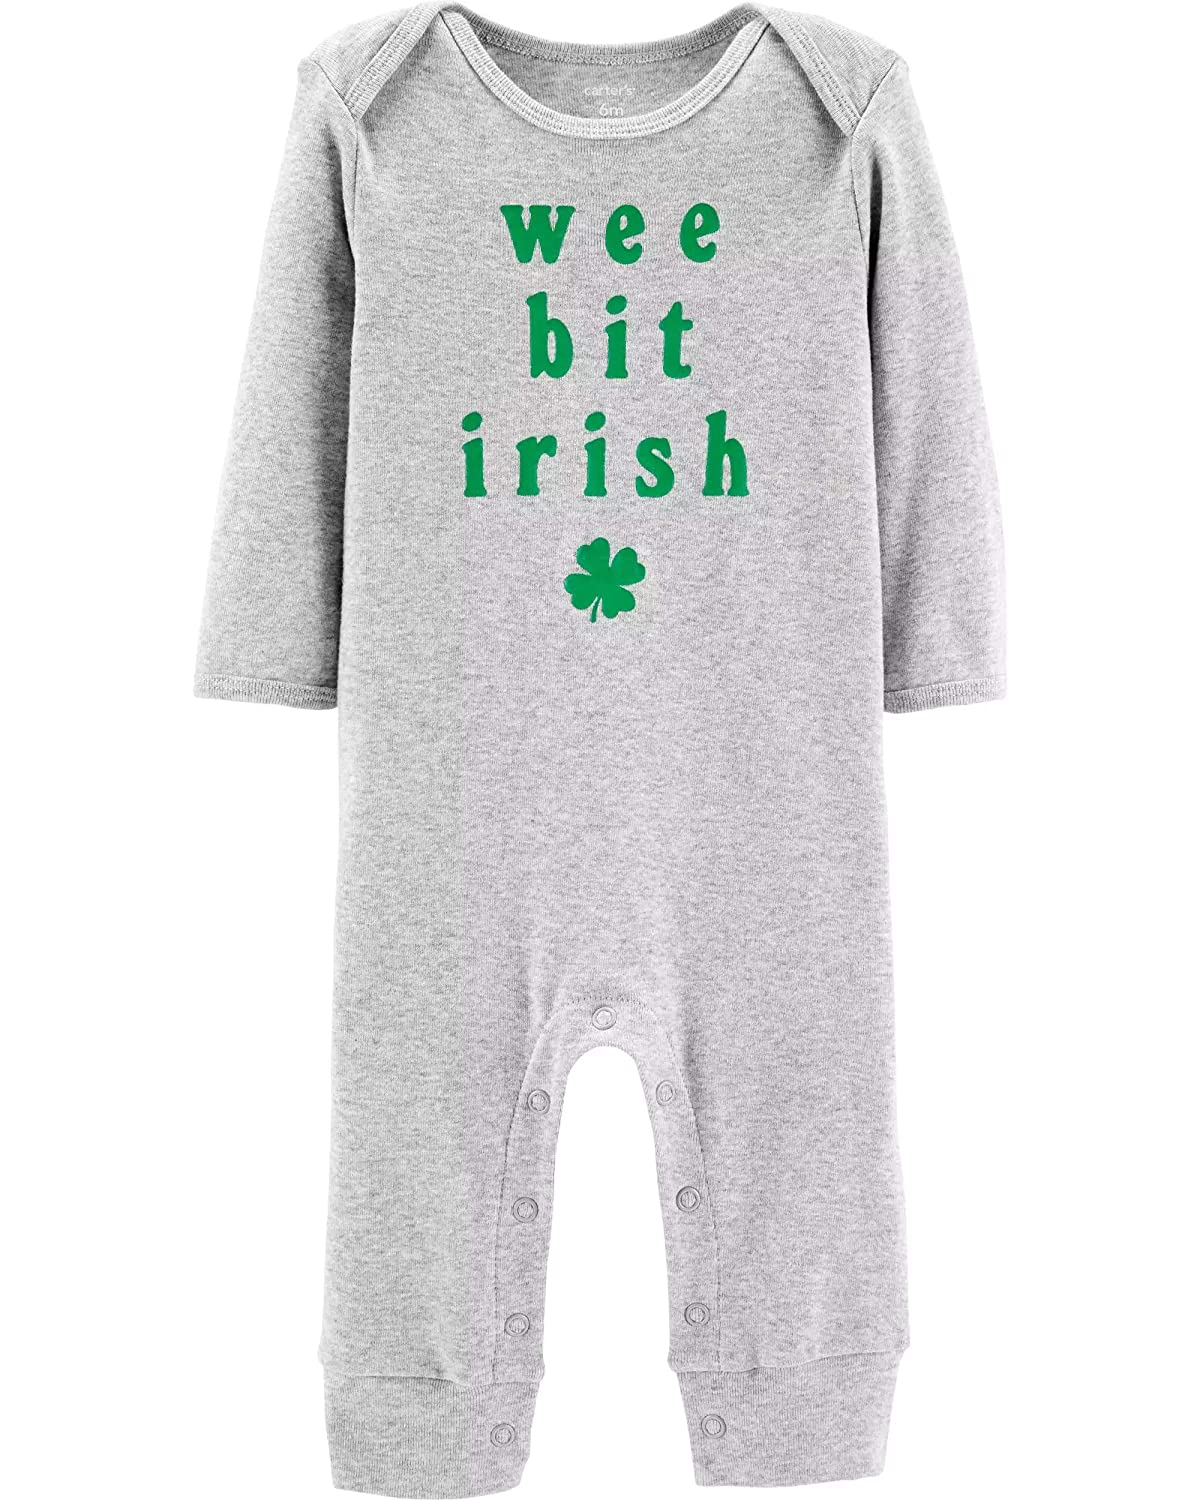 e1ea24c98 Amazon.com  Carter s Unisex Baby St. Patrick s Day Jumpsuit  Clothing